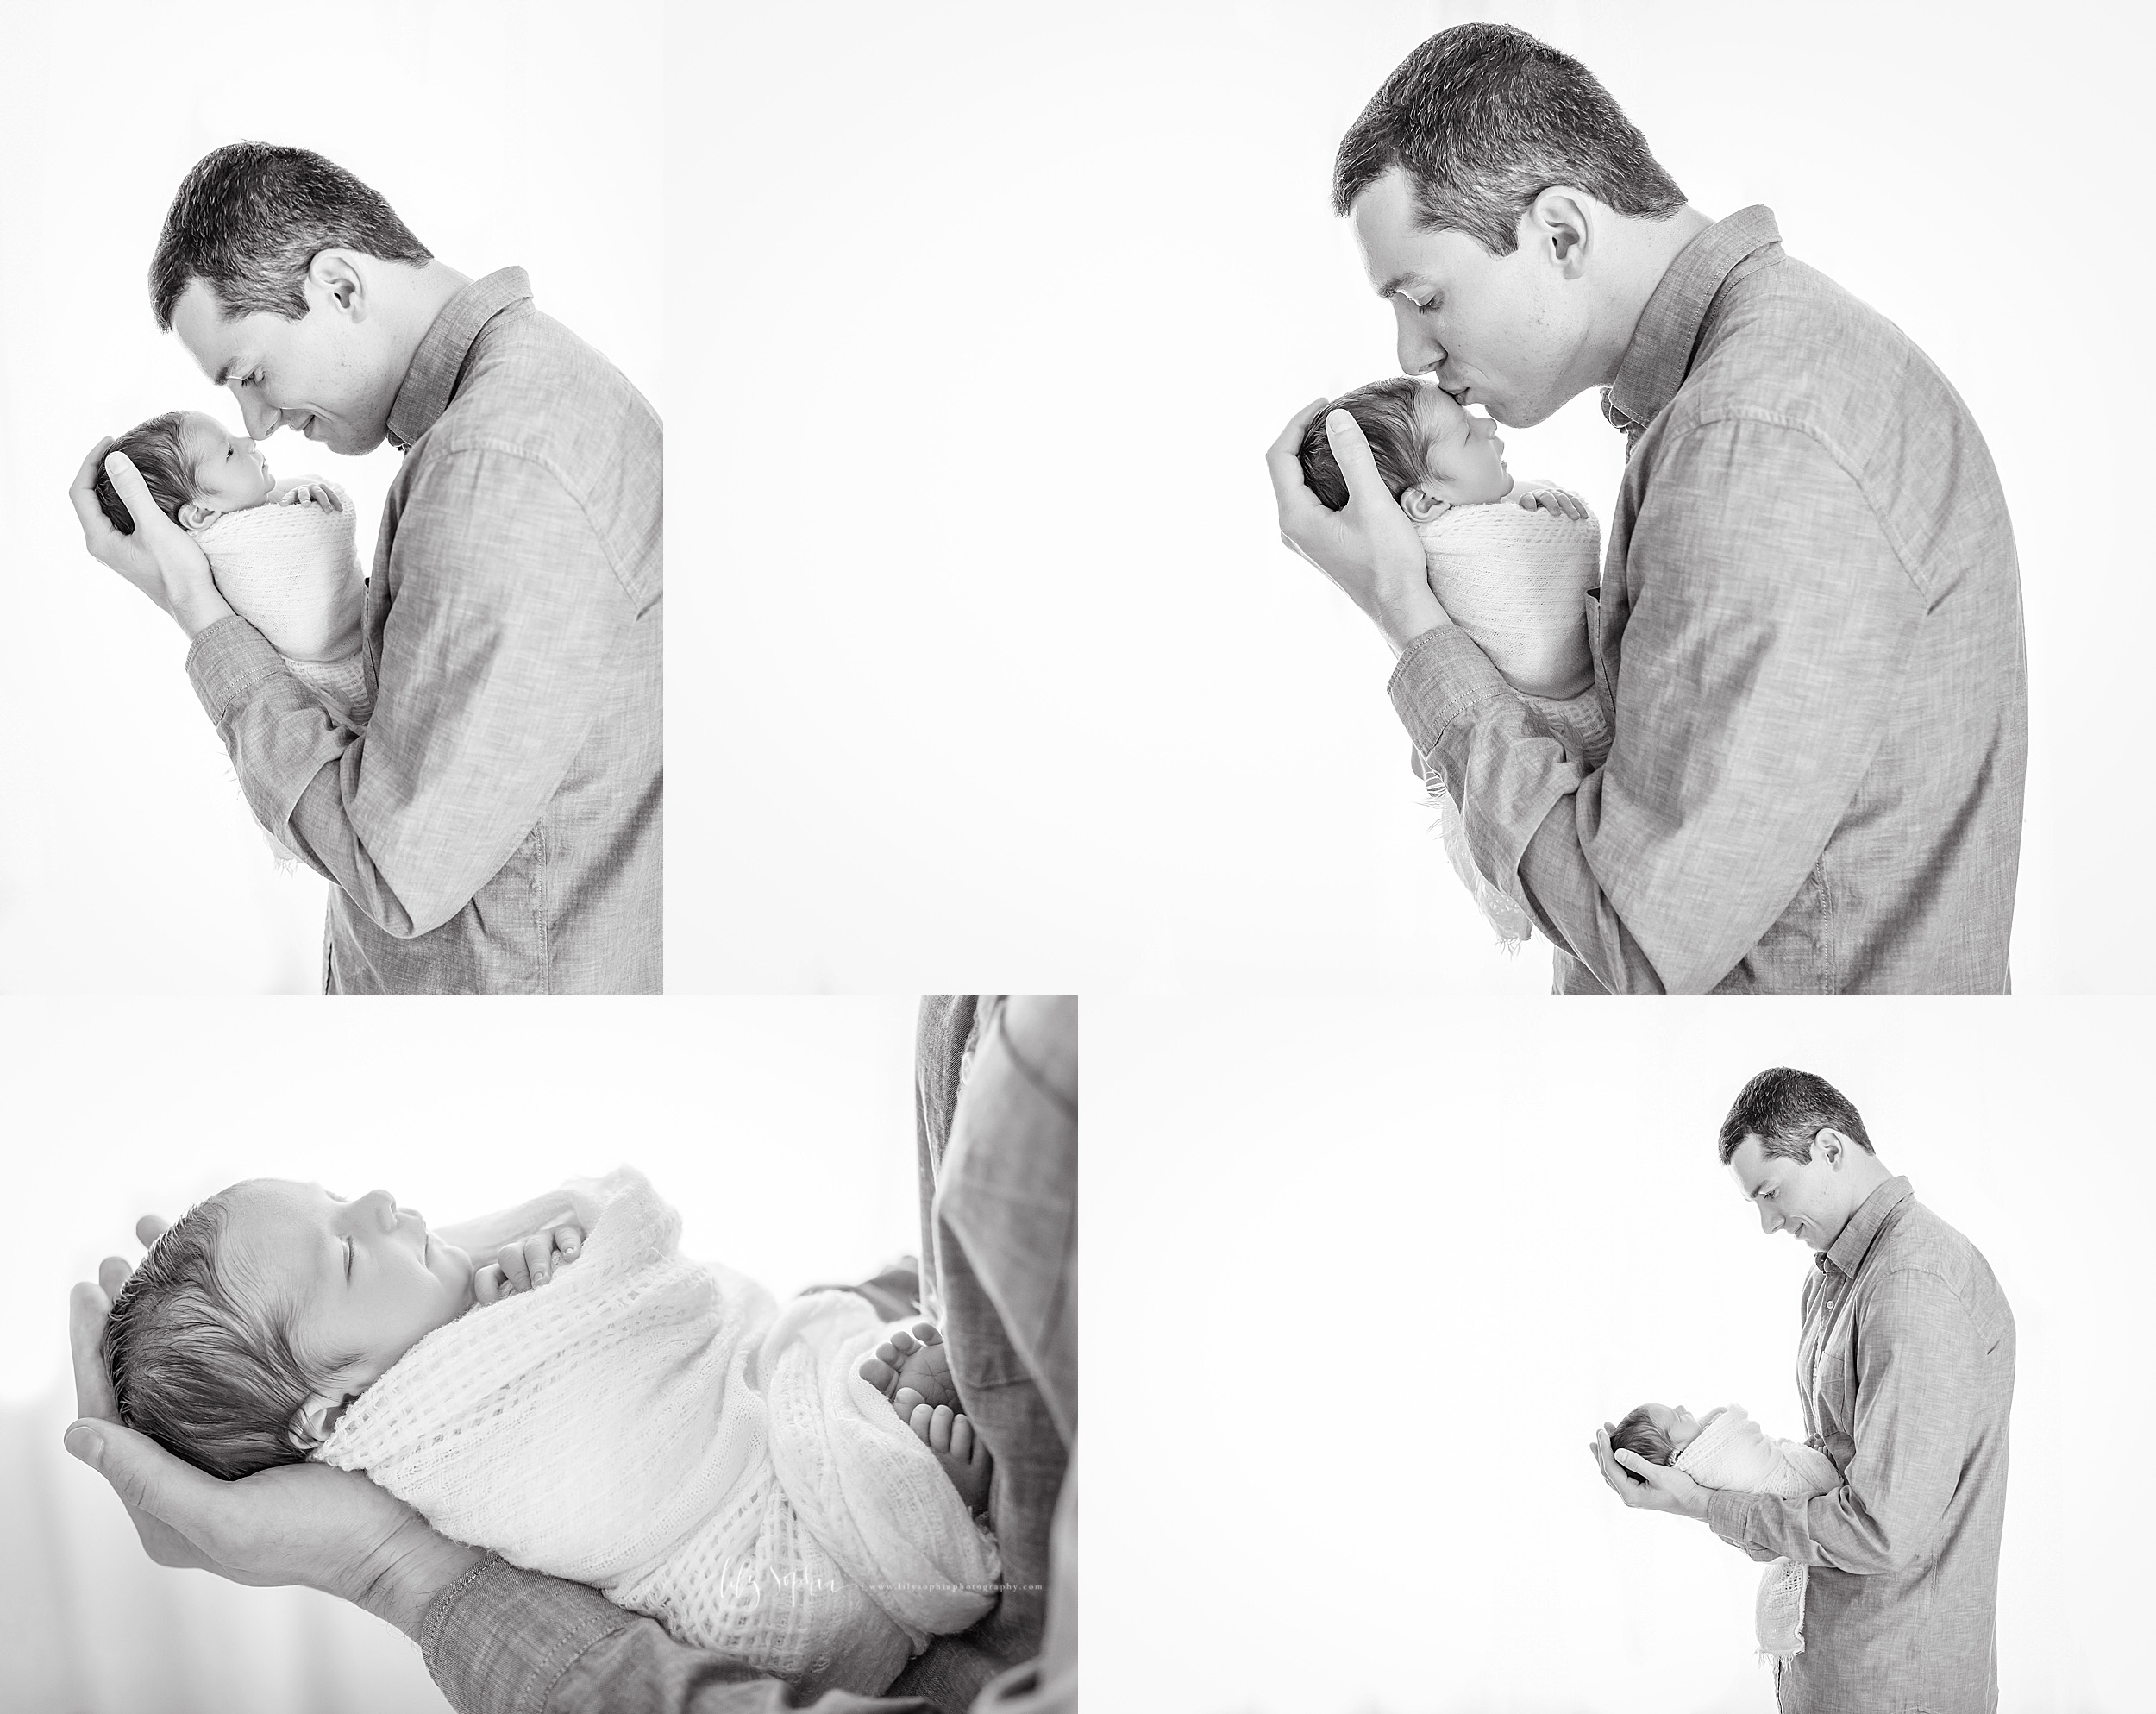 Quad image collage of a father holding his newborn son taken by Lily Sophia Photography. In one photo the father is nose to nose with his newborn son as he stands and cradles his head in his hands. In the second image the father is kissing the forehead of his newborn son as he cradles the newborn's head in his hands. In the third close-up image, the father is holding his newborn in his arms with the newborn's head in his hands and the rest of the newborn's body on his forearms, with the newborn's feet against the father's chest. In the fourth image, the father is standing, looking lovingly at his newborn as he cradles the newborn's head in his hands and supports the rest of his son's body on his forearms.